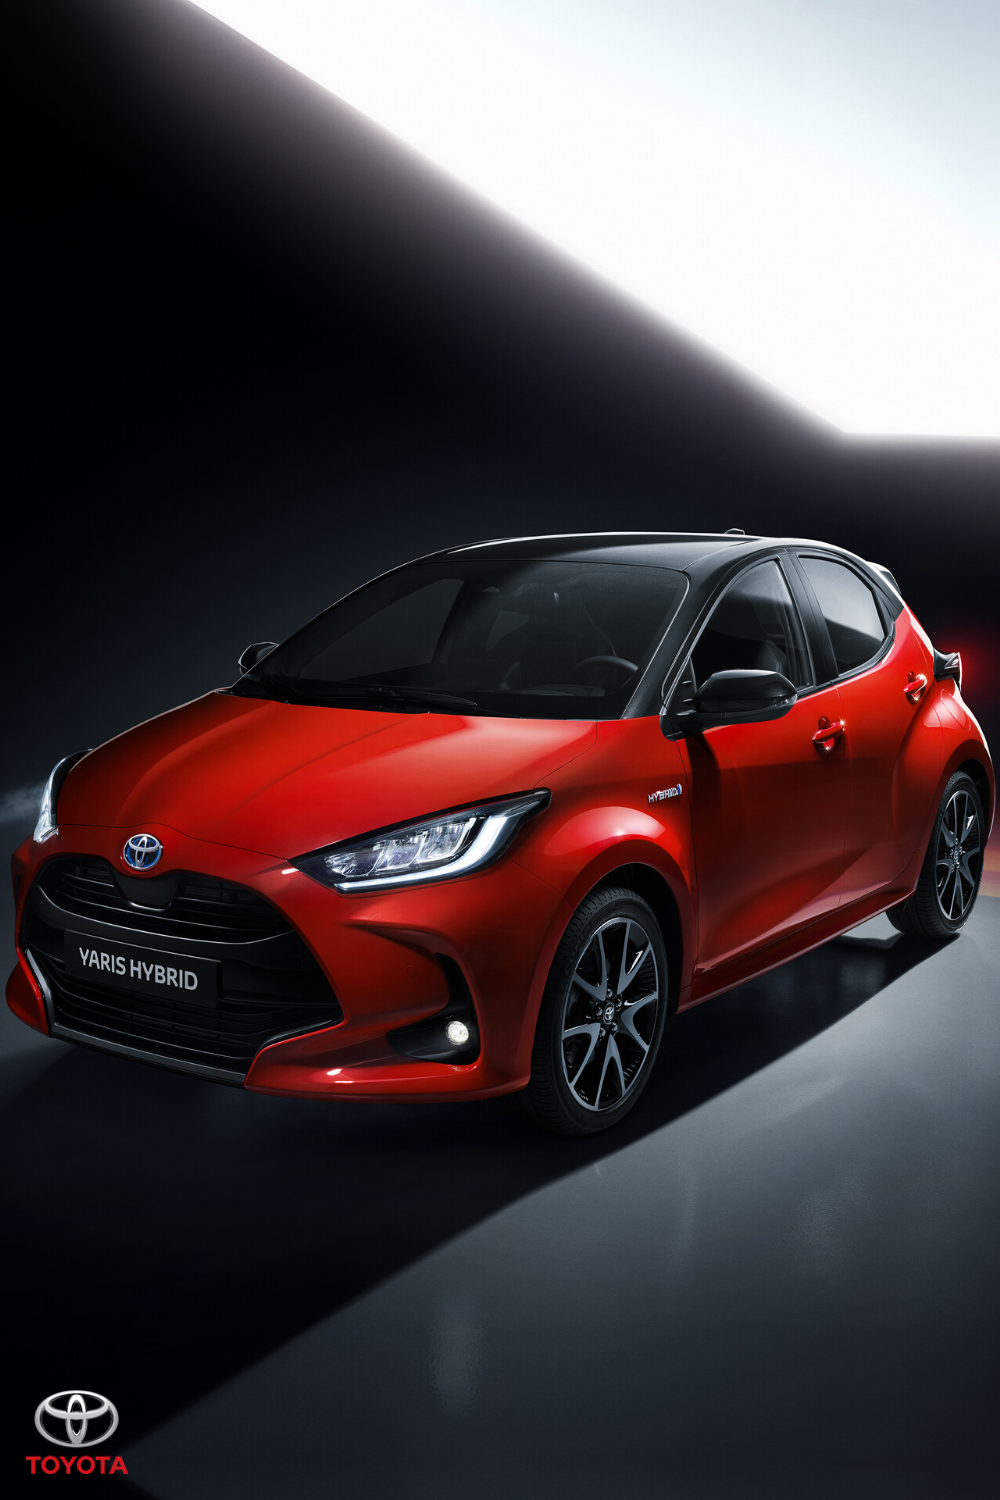 The all-new Toyota Yaris: arriving late 2020. Click to find out more. #Toyota #ToyotaYaris #SmallCar #CompactCar #CityLiving #HybridCar #NewCars